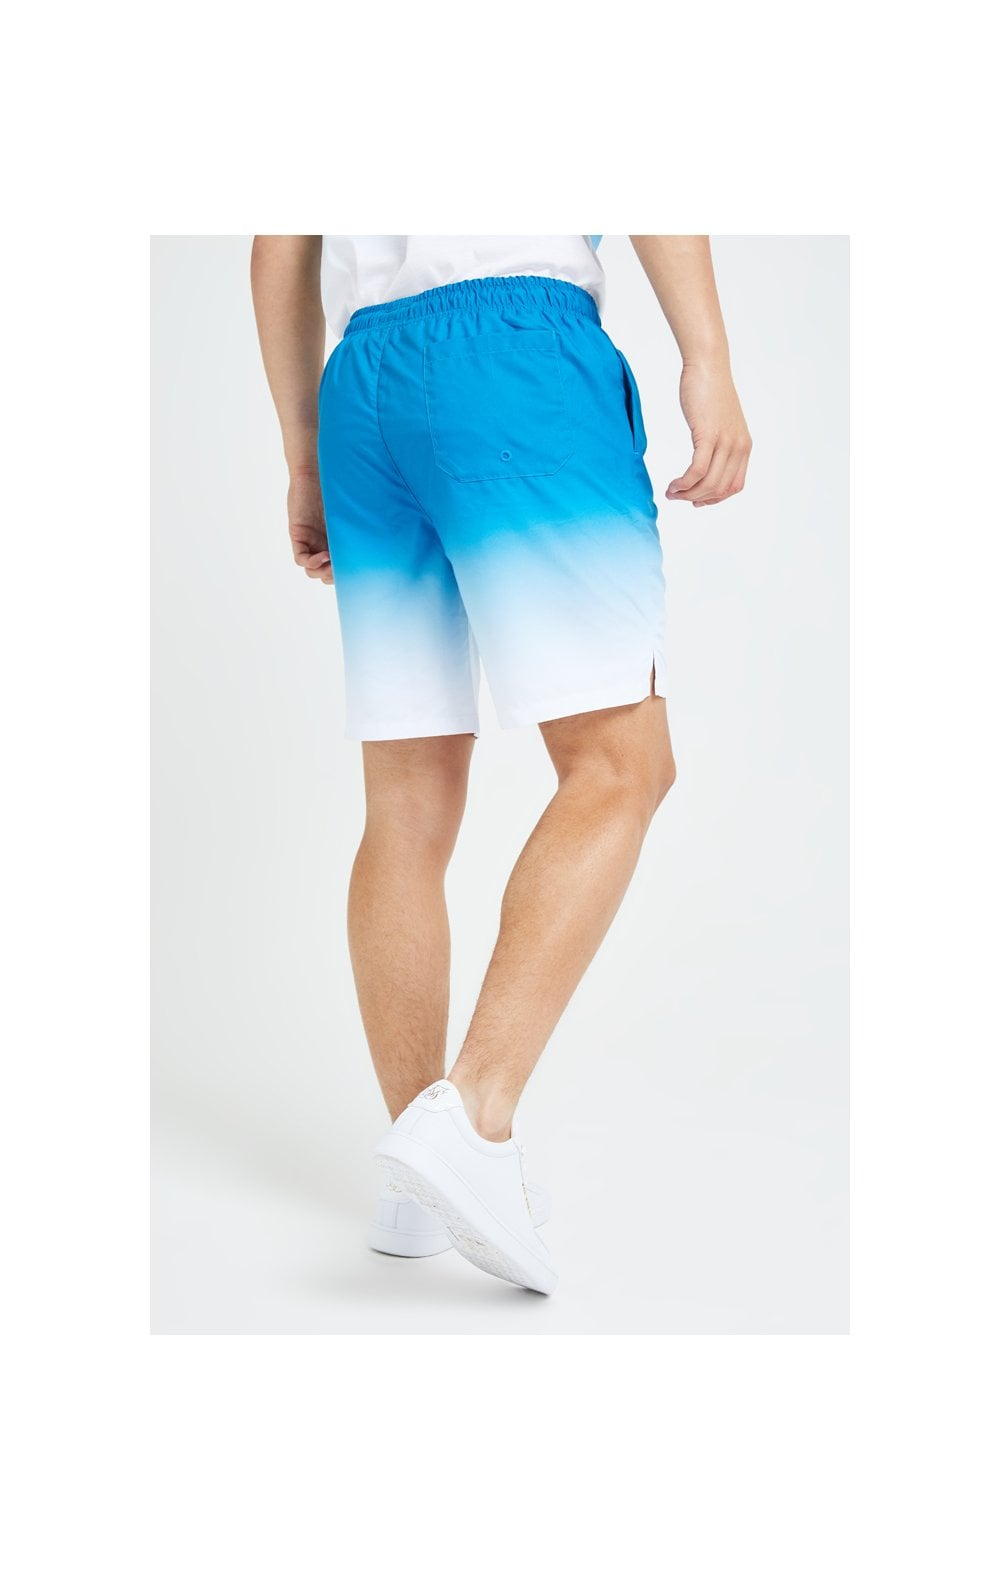 Illusive London Elevate Fade Swim Shorts - Blue & White (2)